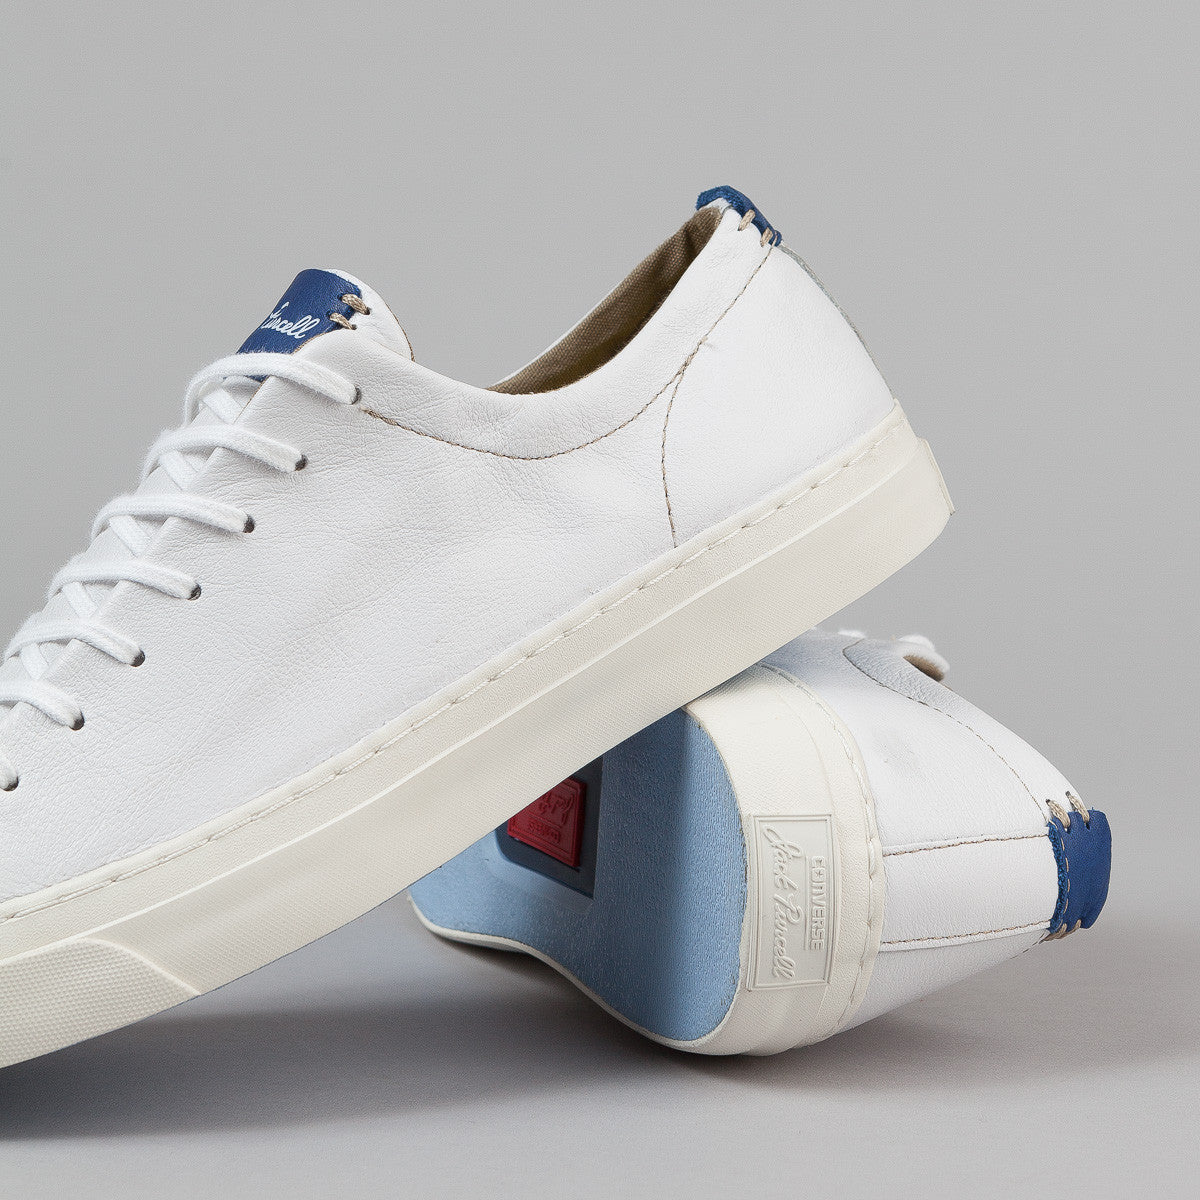 Converse JP Jack OX Shoes - White / Egret / Road Trip Blue